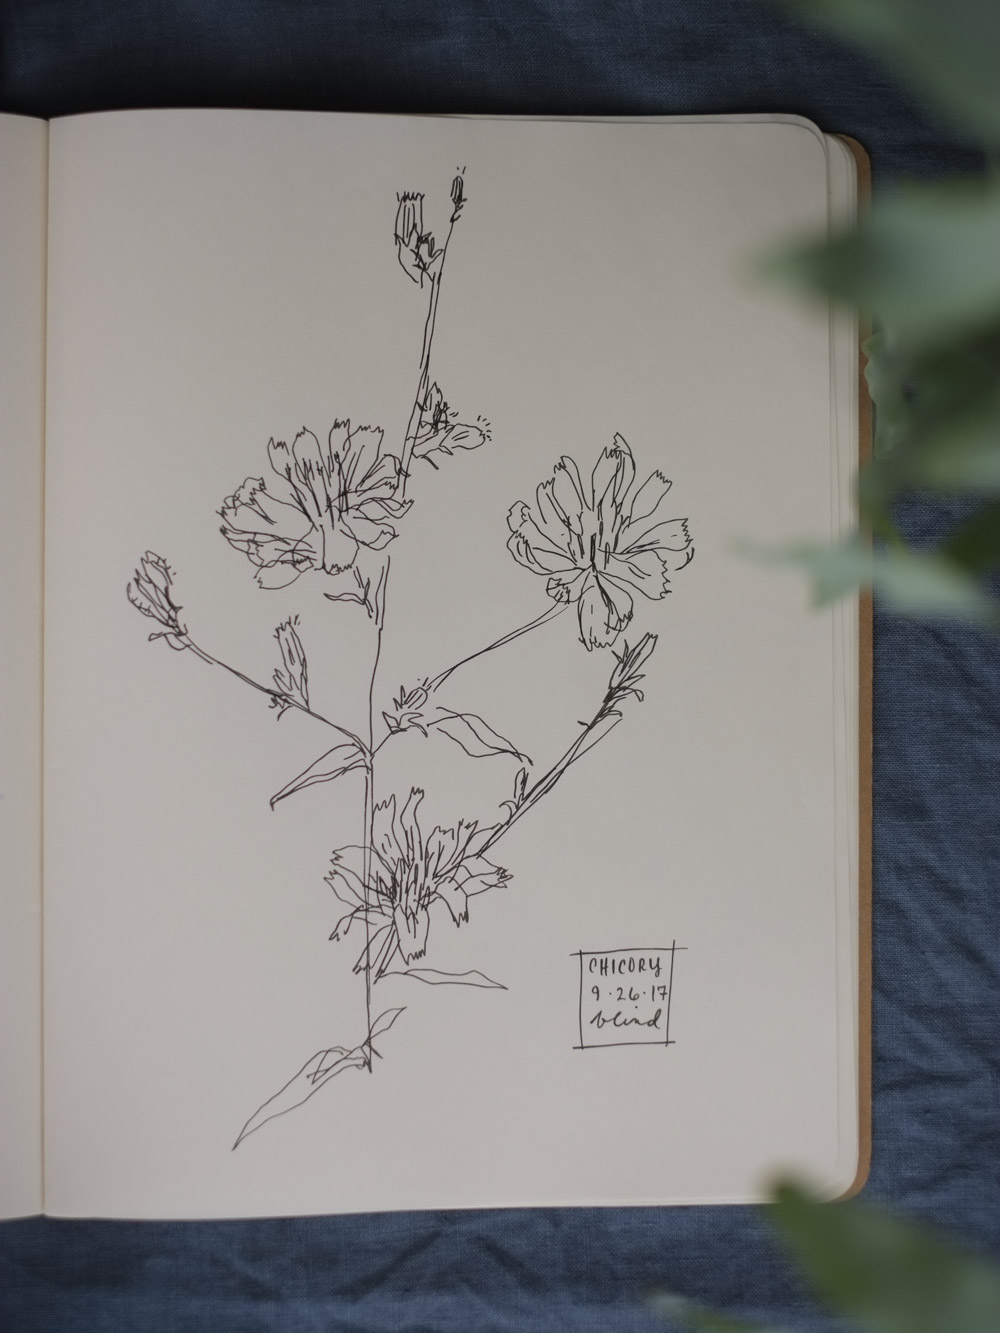 Erin_Ellis_daily_botanical_blind_drawings_sept_2017.jpg-30.jpg